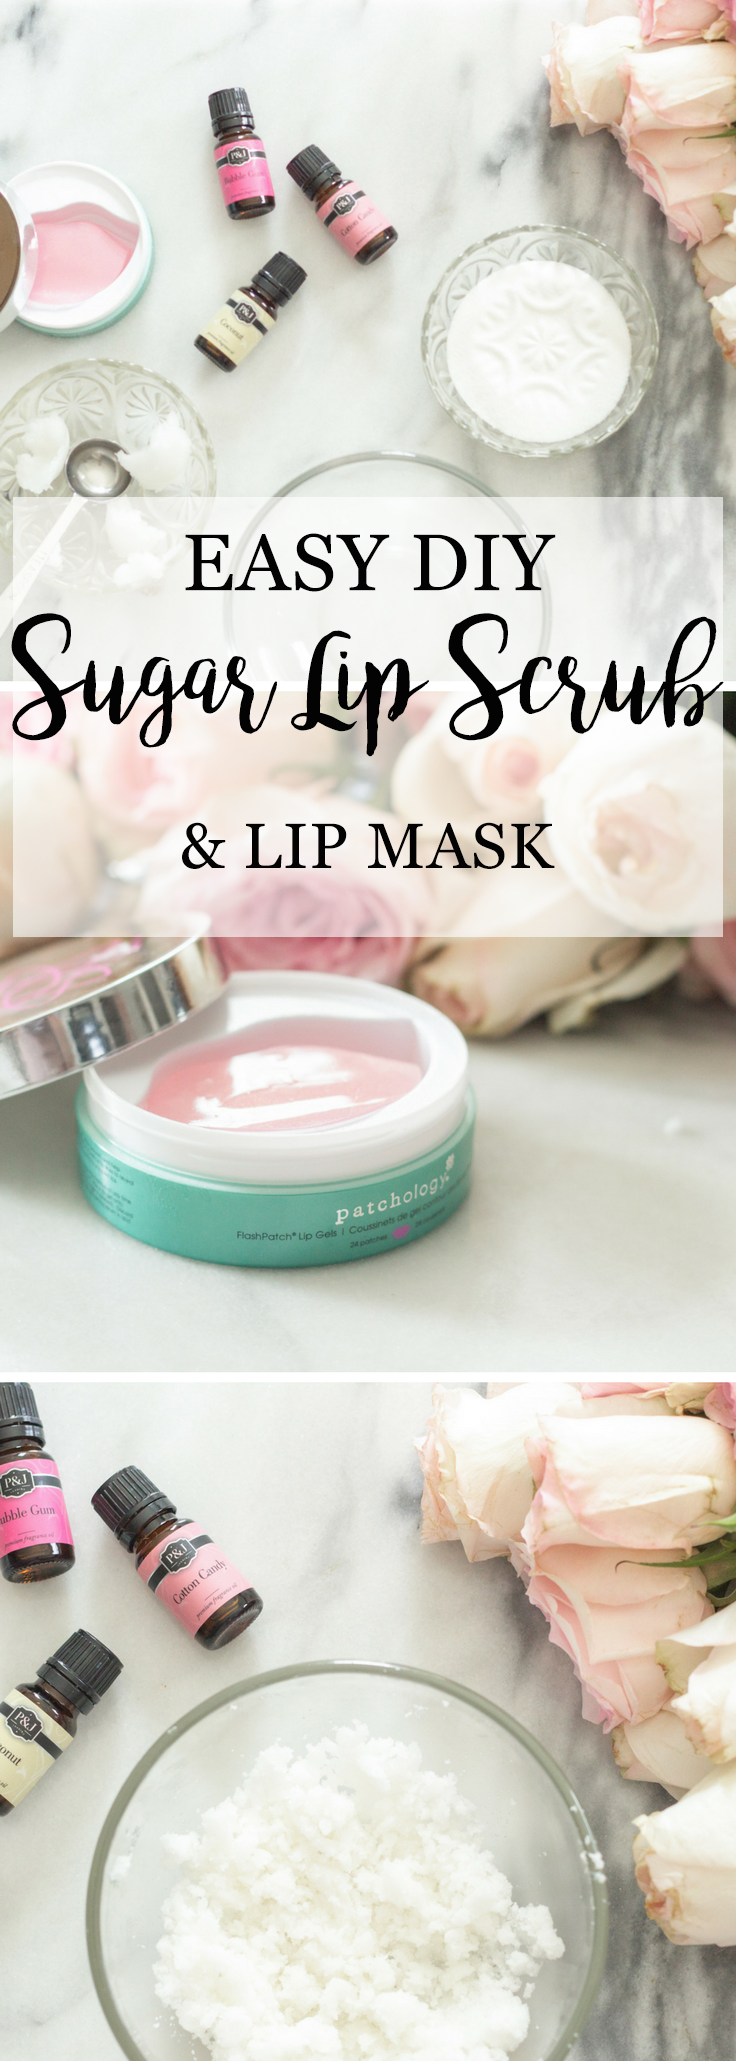 The best DIY lip scrub for the perfect pout.